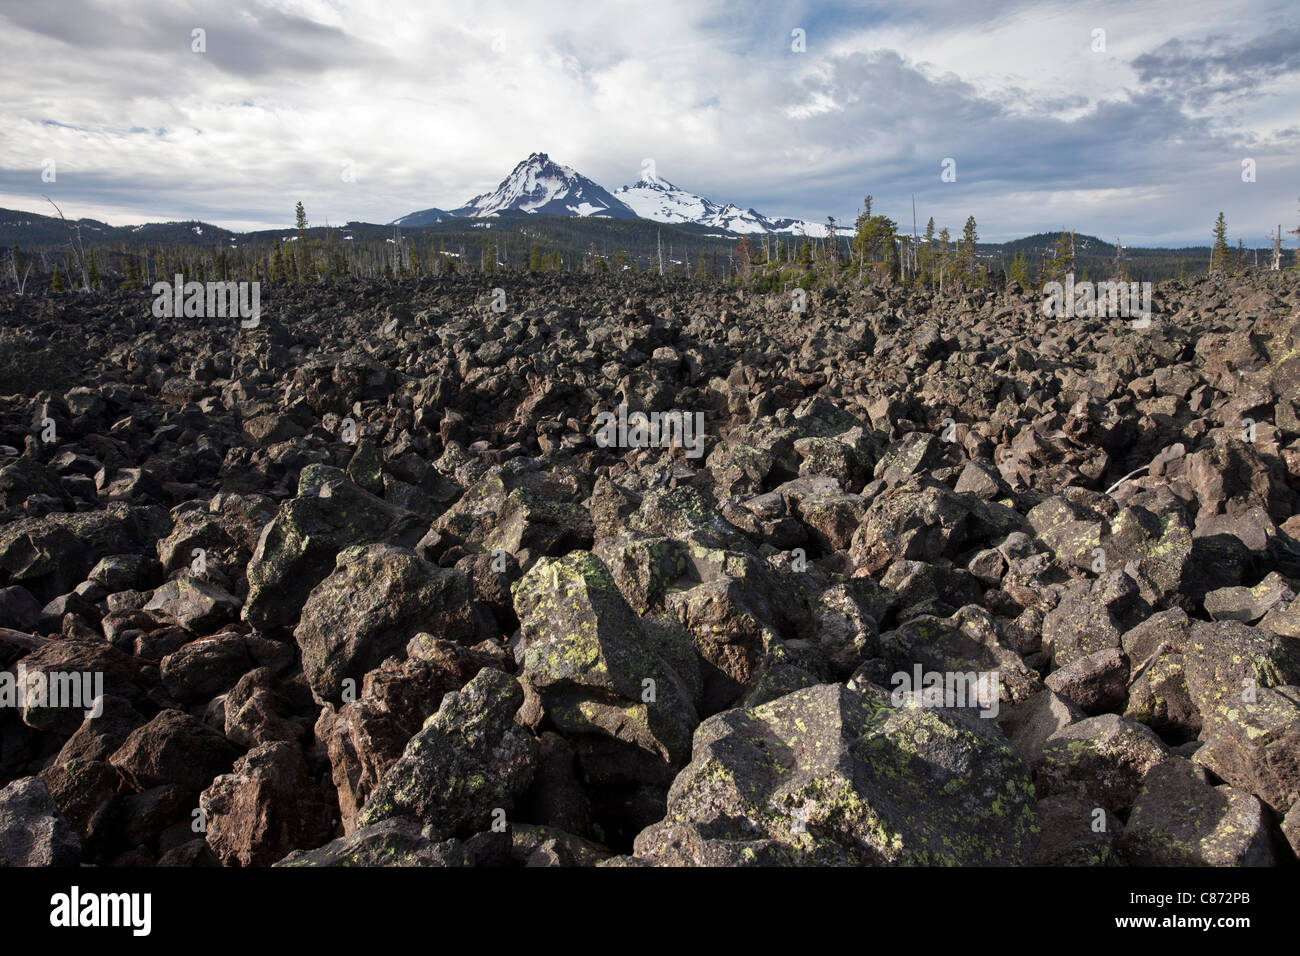 huge lava fields of the Belknap Crater Complex on the McKenzie Pass (5335ft/1623 m), Cascade Range in central - Stock Image